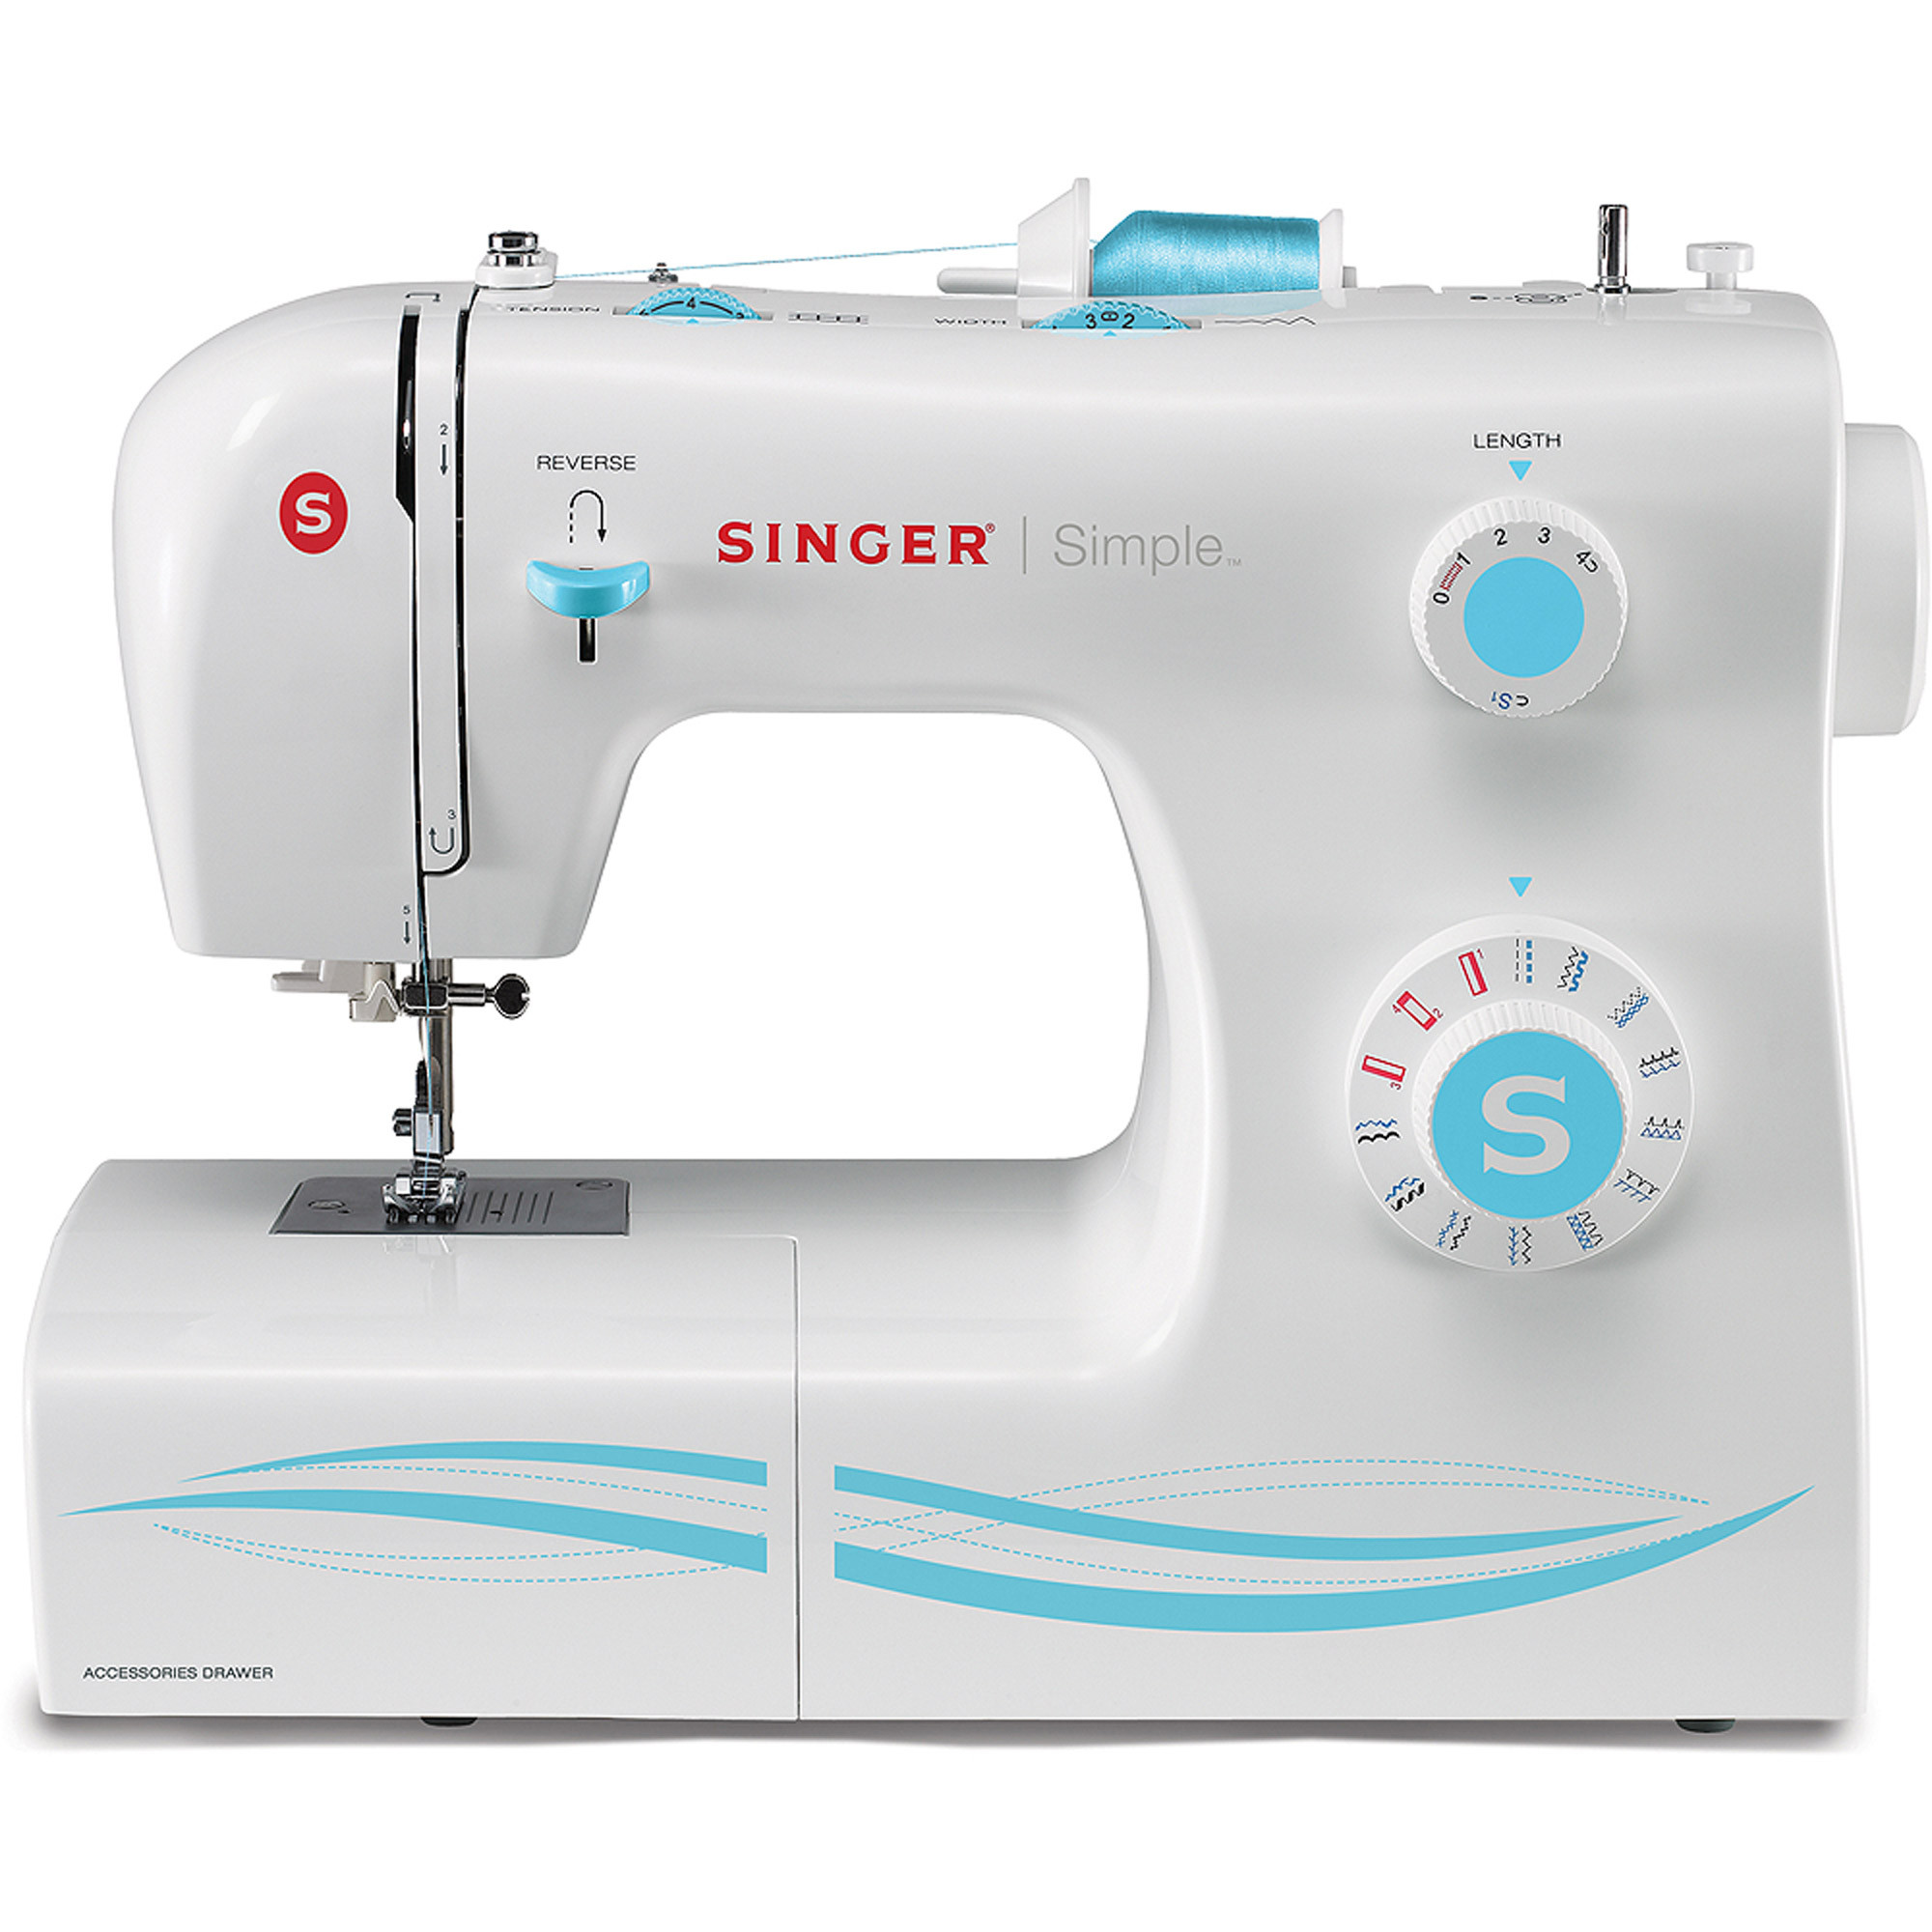 Sewing and Embroidery Machine New Sewing Machines Walmart Of Unique 48 Pics Sewing and Embroidery Machine